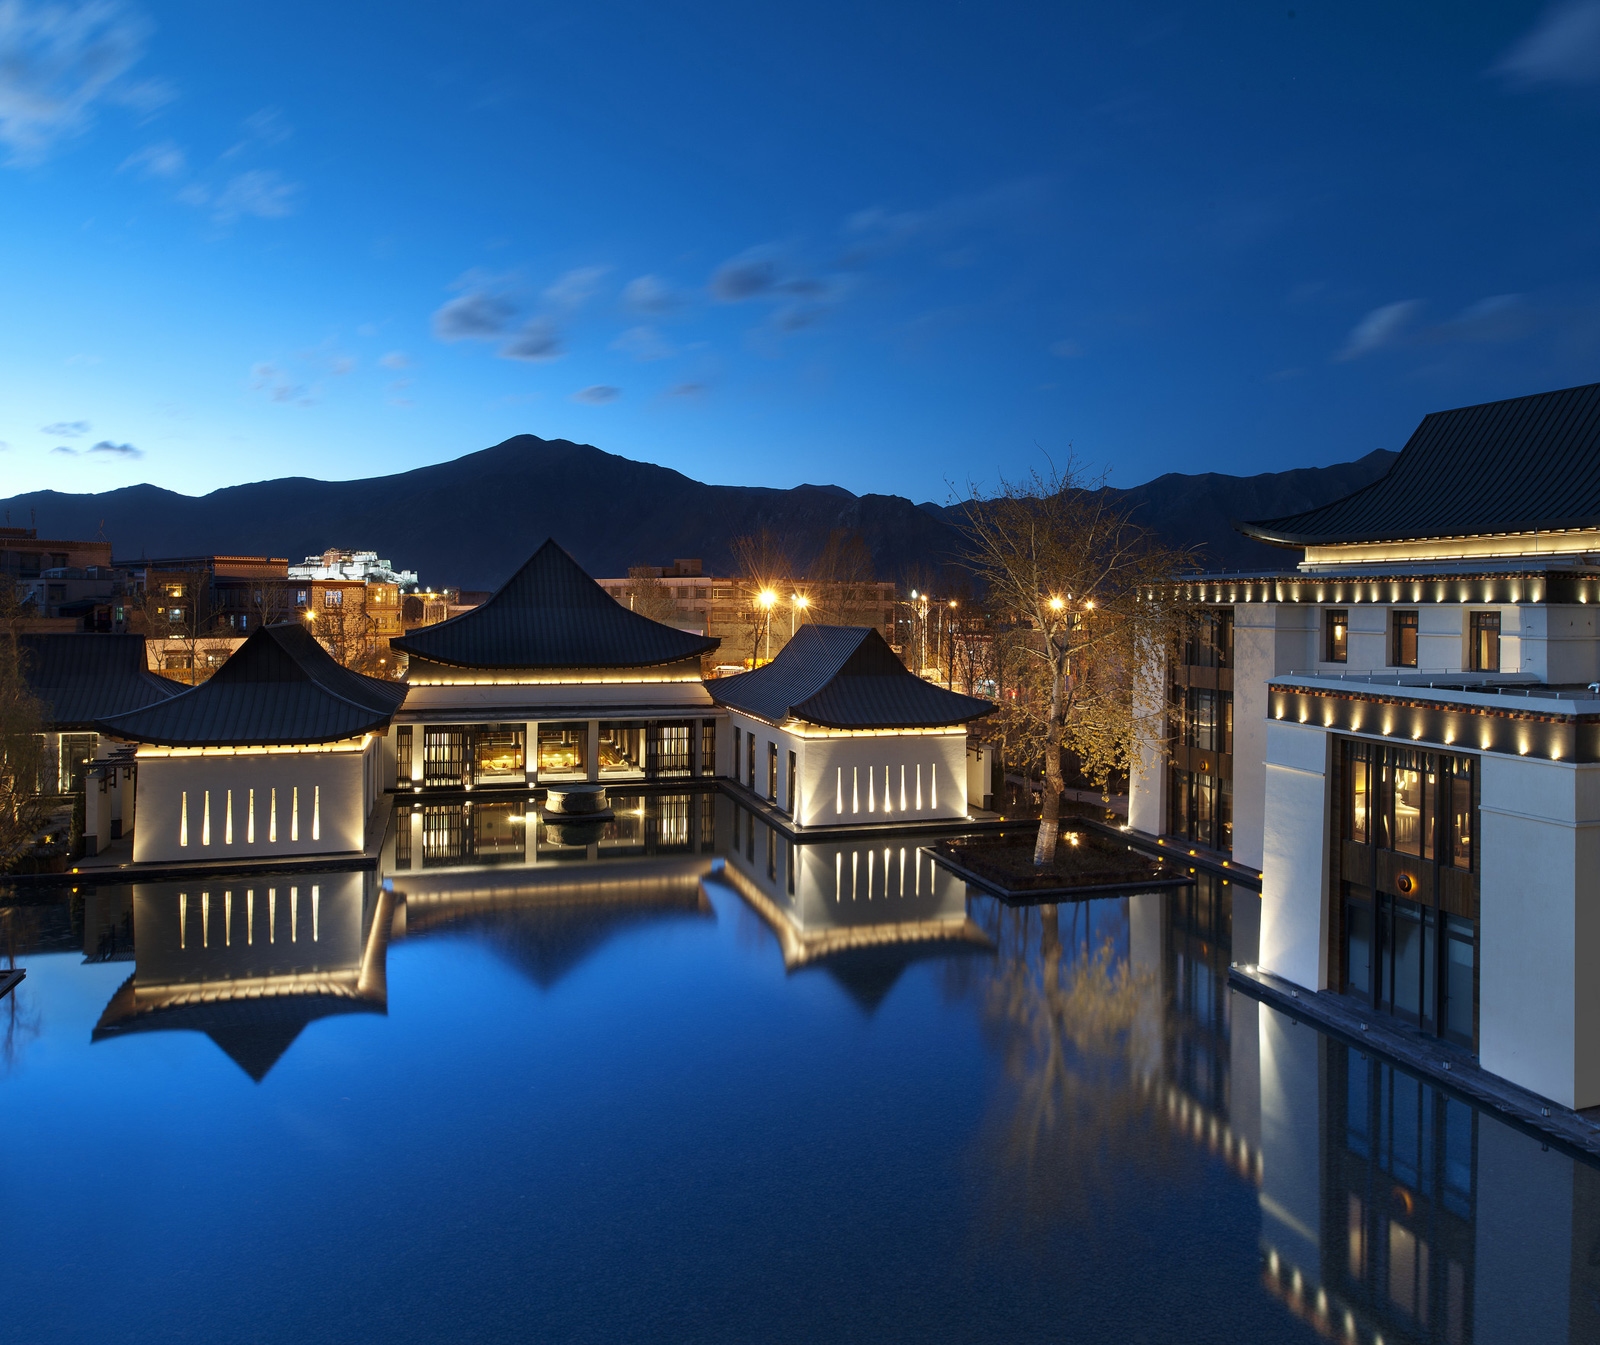 St regis lhasa tibet 39 s first five star hotel extravaganzi for Top hotels worldwide